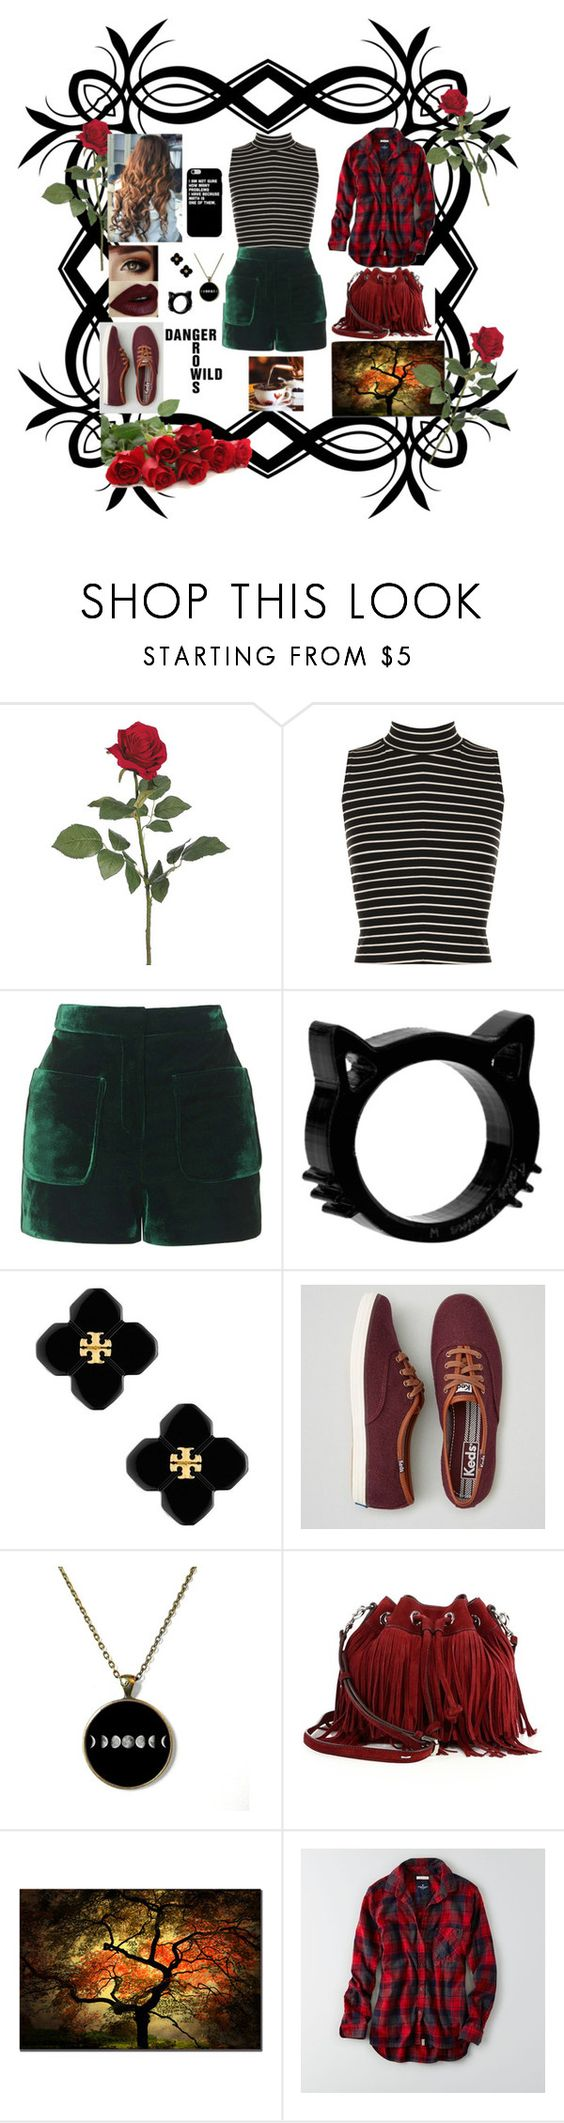 """""""Touch of velvet"""" by abigailscattergood on Polyvore featuring WearAll, Topshop, Tory Burch, American Eagle Outfitters, Rebecca Minkoff, stripes, velvet and roses"""